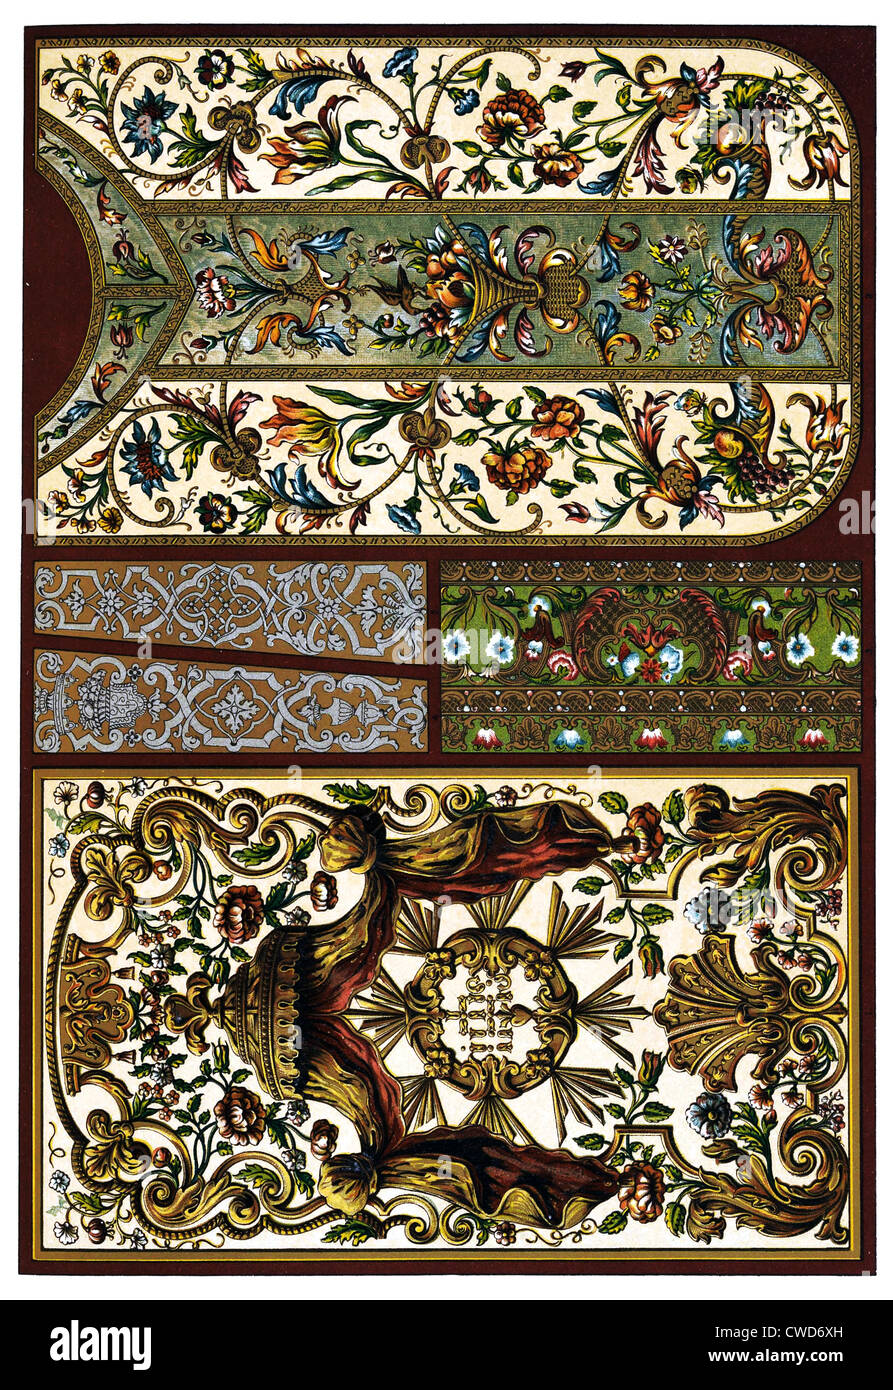 XVII. and XVIII. Century embroidery pressed leather wall coverings and gold work - Stock Image